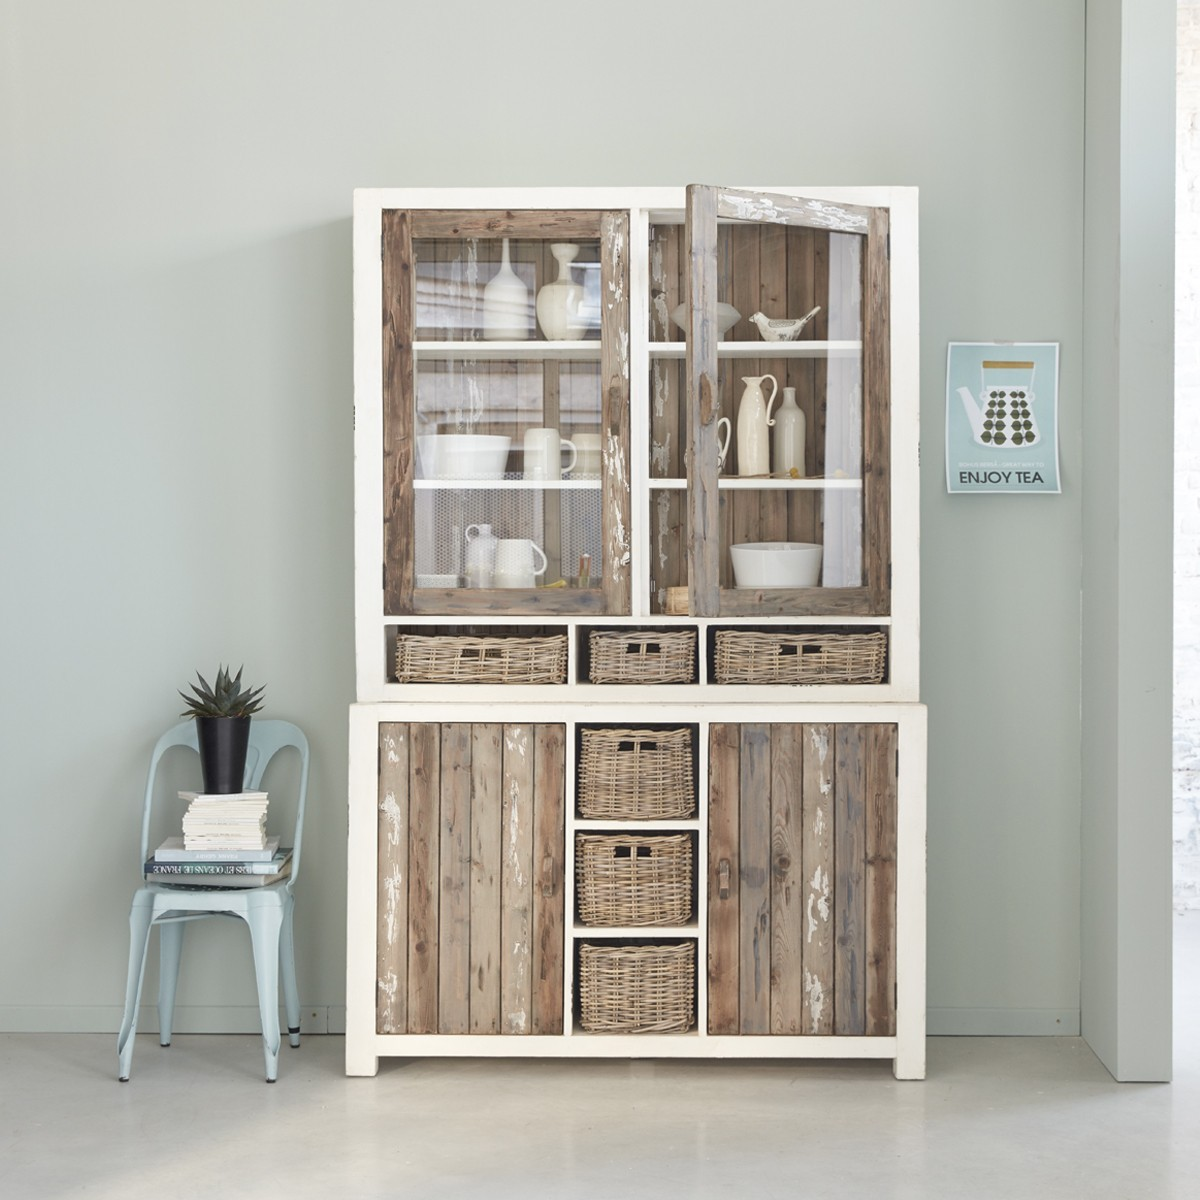 vaisselier en bois de pin recycl 140 atlantic bois dessus bois dessous. Black Bedroom Furniture Sets. Home Design Ideas